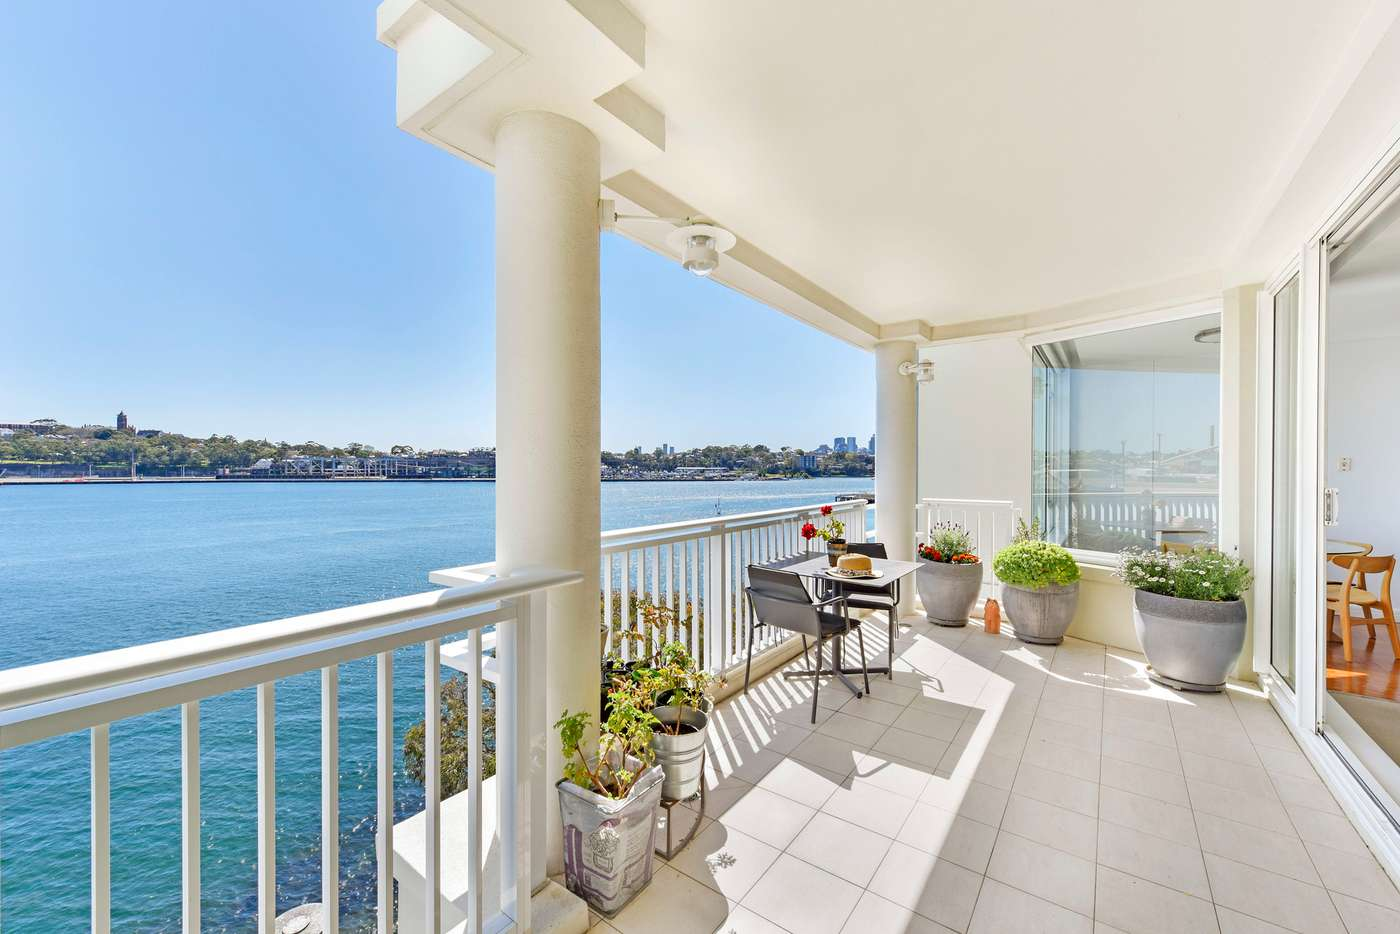 Main view of Homely apartment listing, 402/38 Refinery Drive, Pyrmont NSW 2009